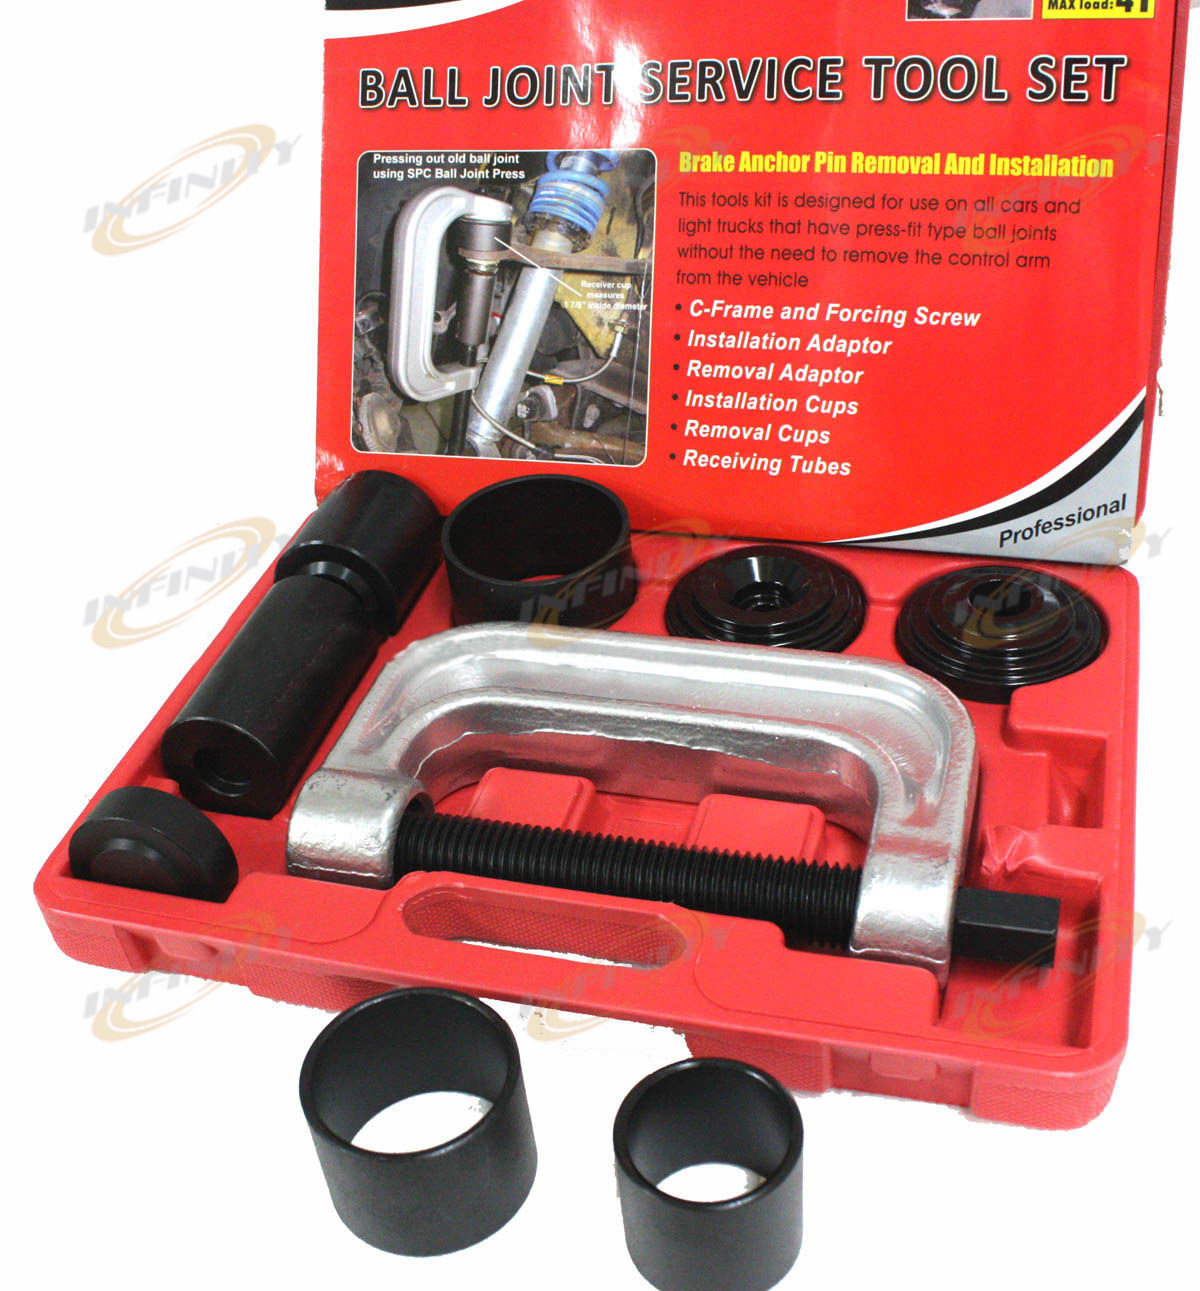 4 in 1 Ball Joint Service 2 & 4WD Auto Repair Brake Anchor